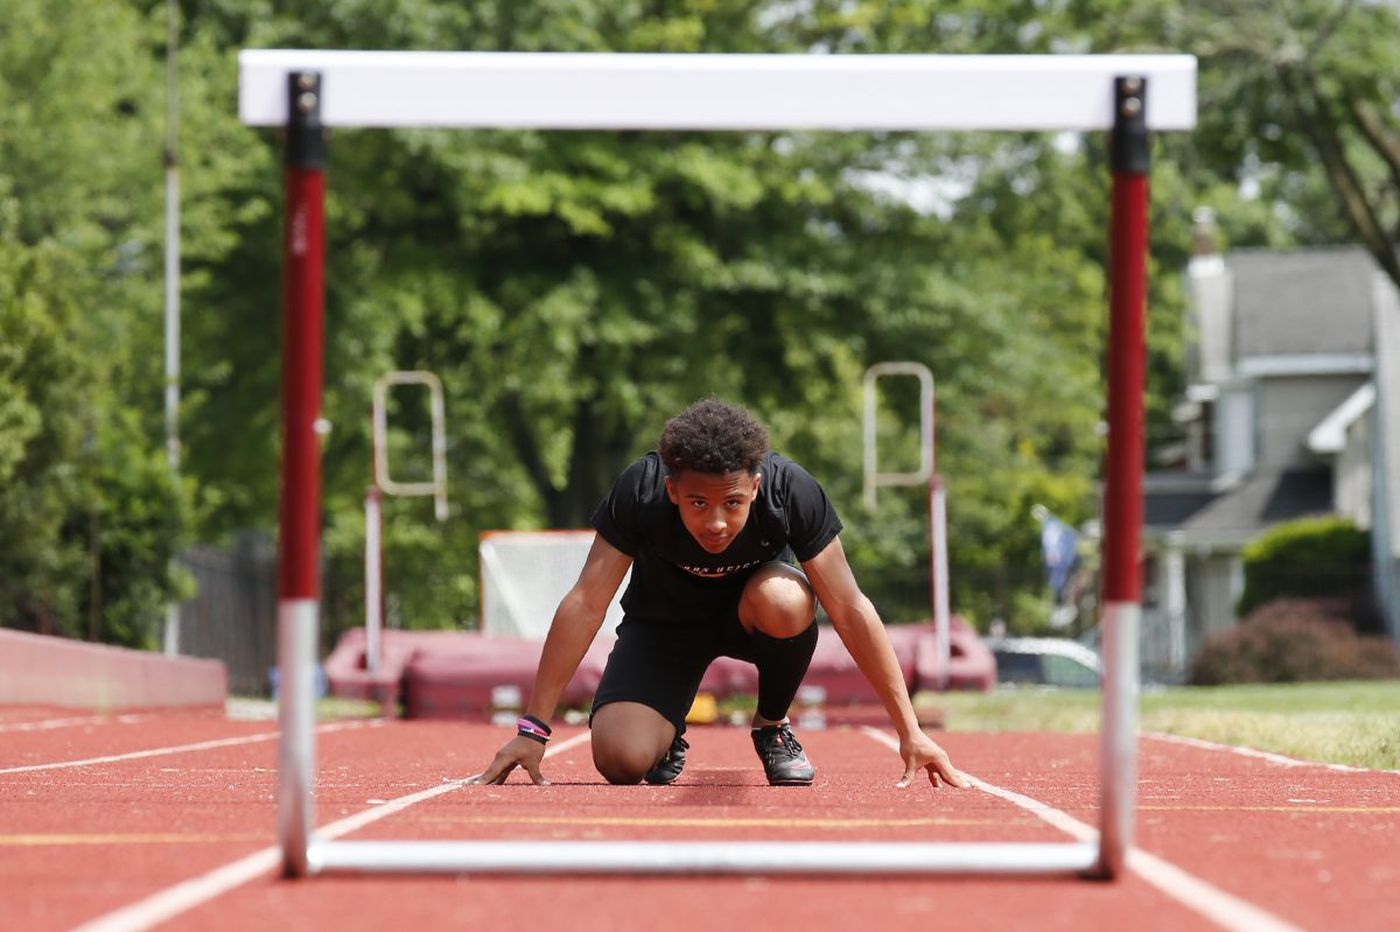 Cameron Kee leads Haddon Heights track team in pursuit of state title